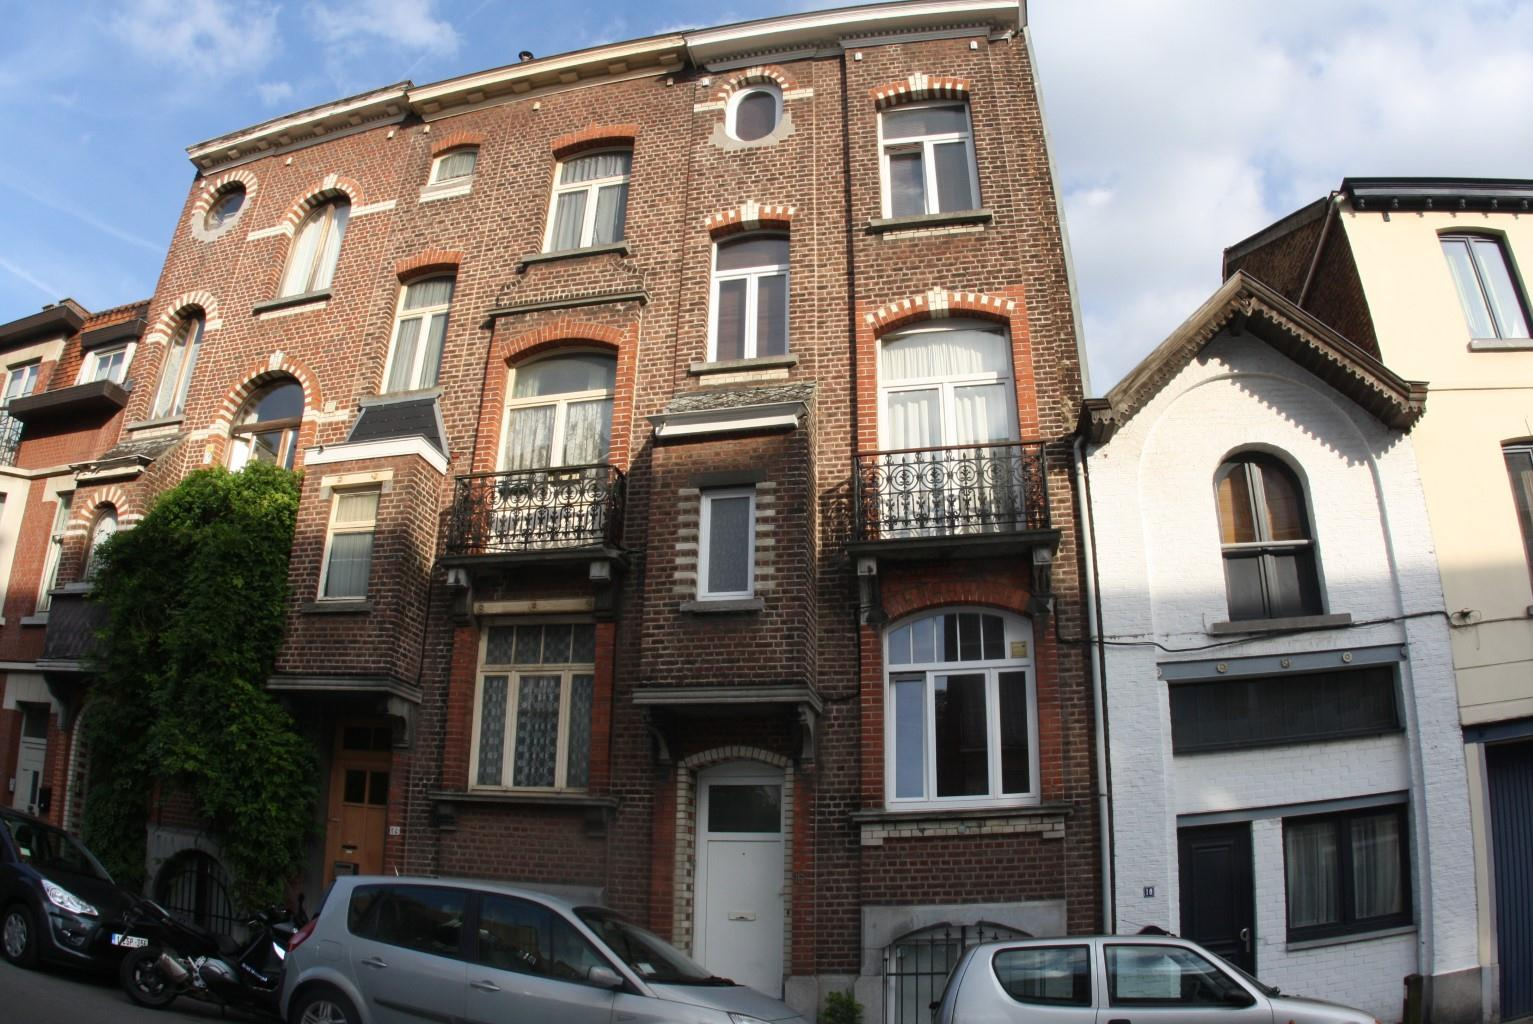 House - Uccle - #1701801-0